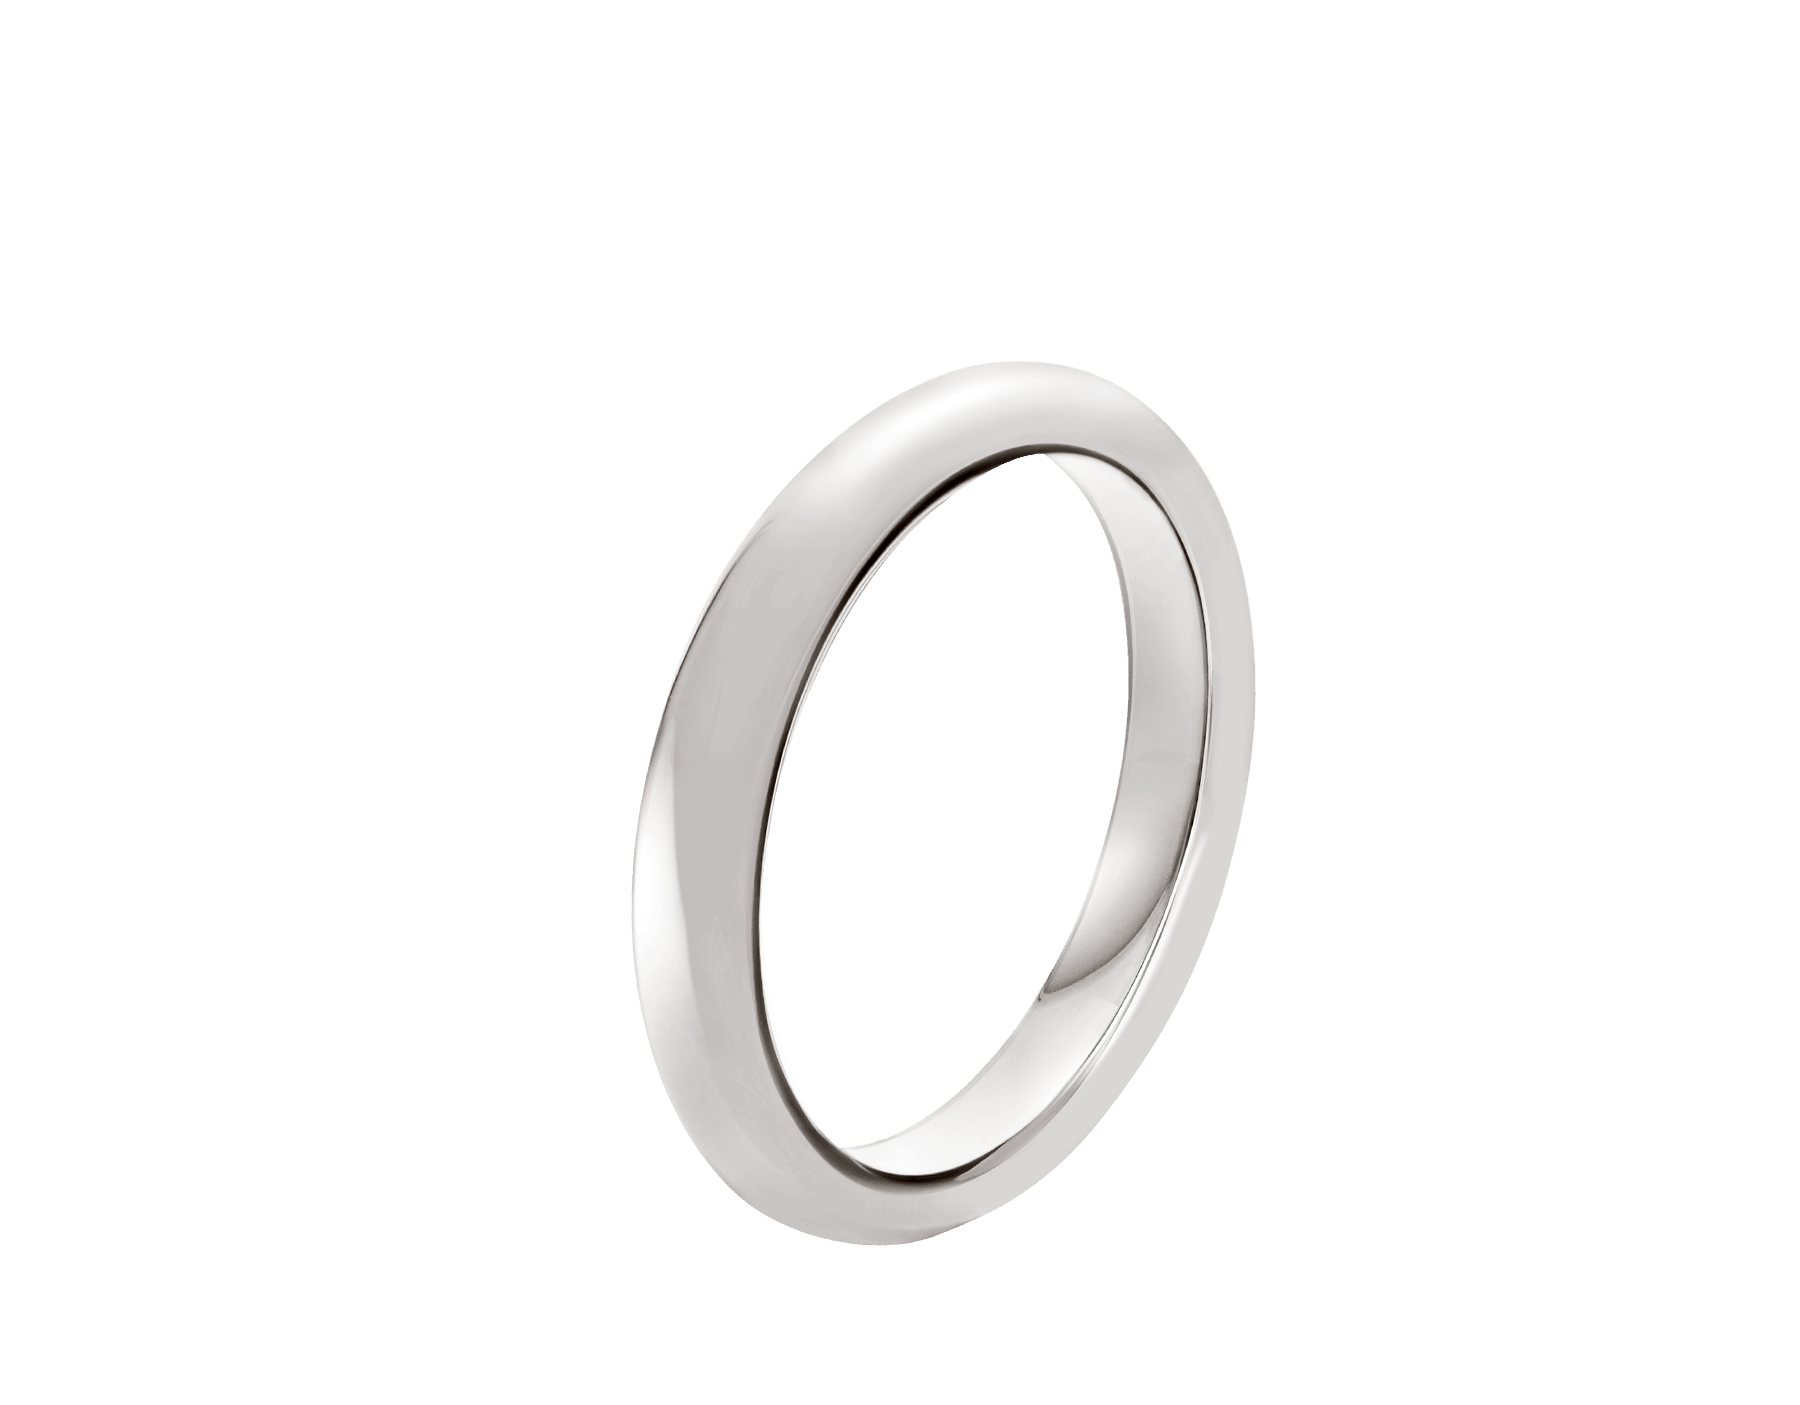 Fedi Wedding Band in platinum AN852822 image 1